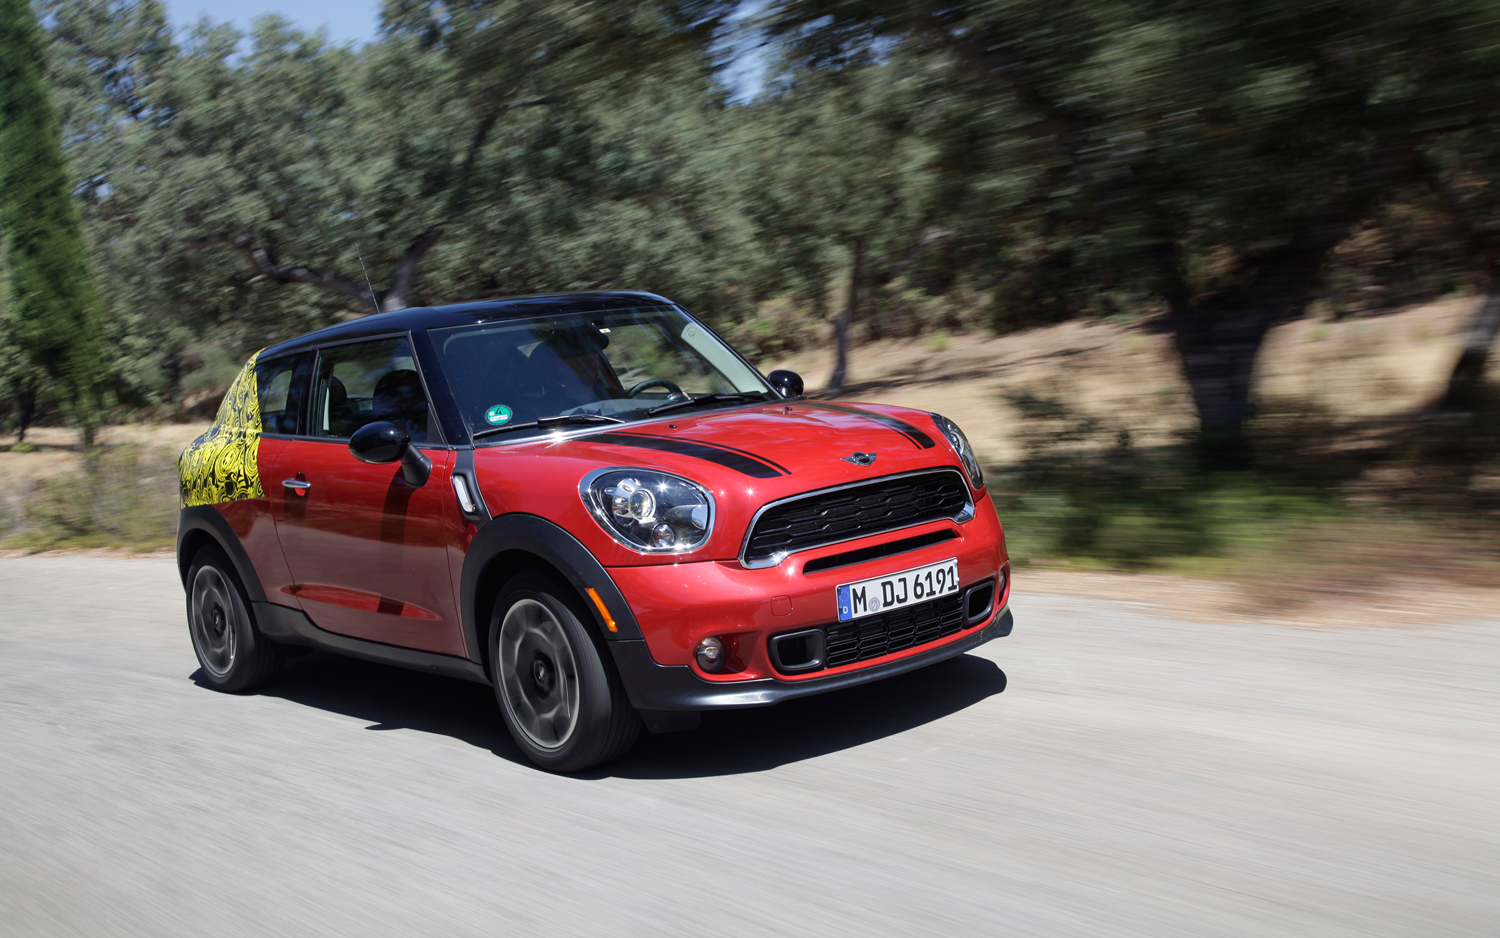 2014 mini cooper s paceman all4 prototype first drive - motortrend